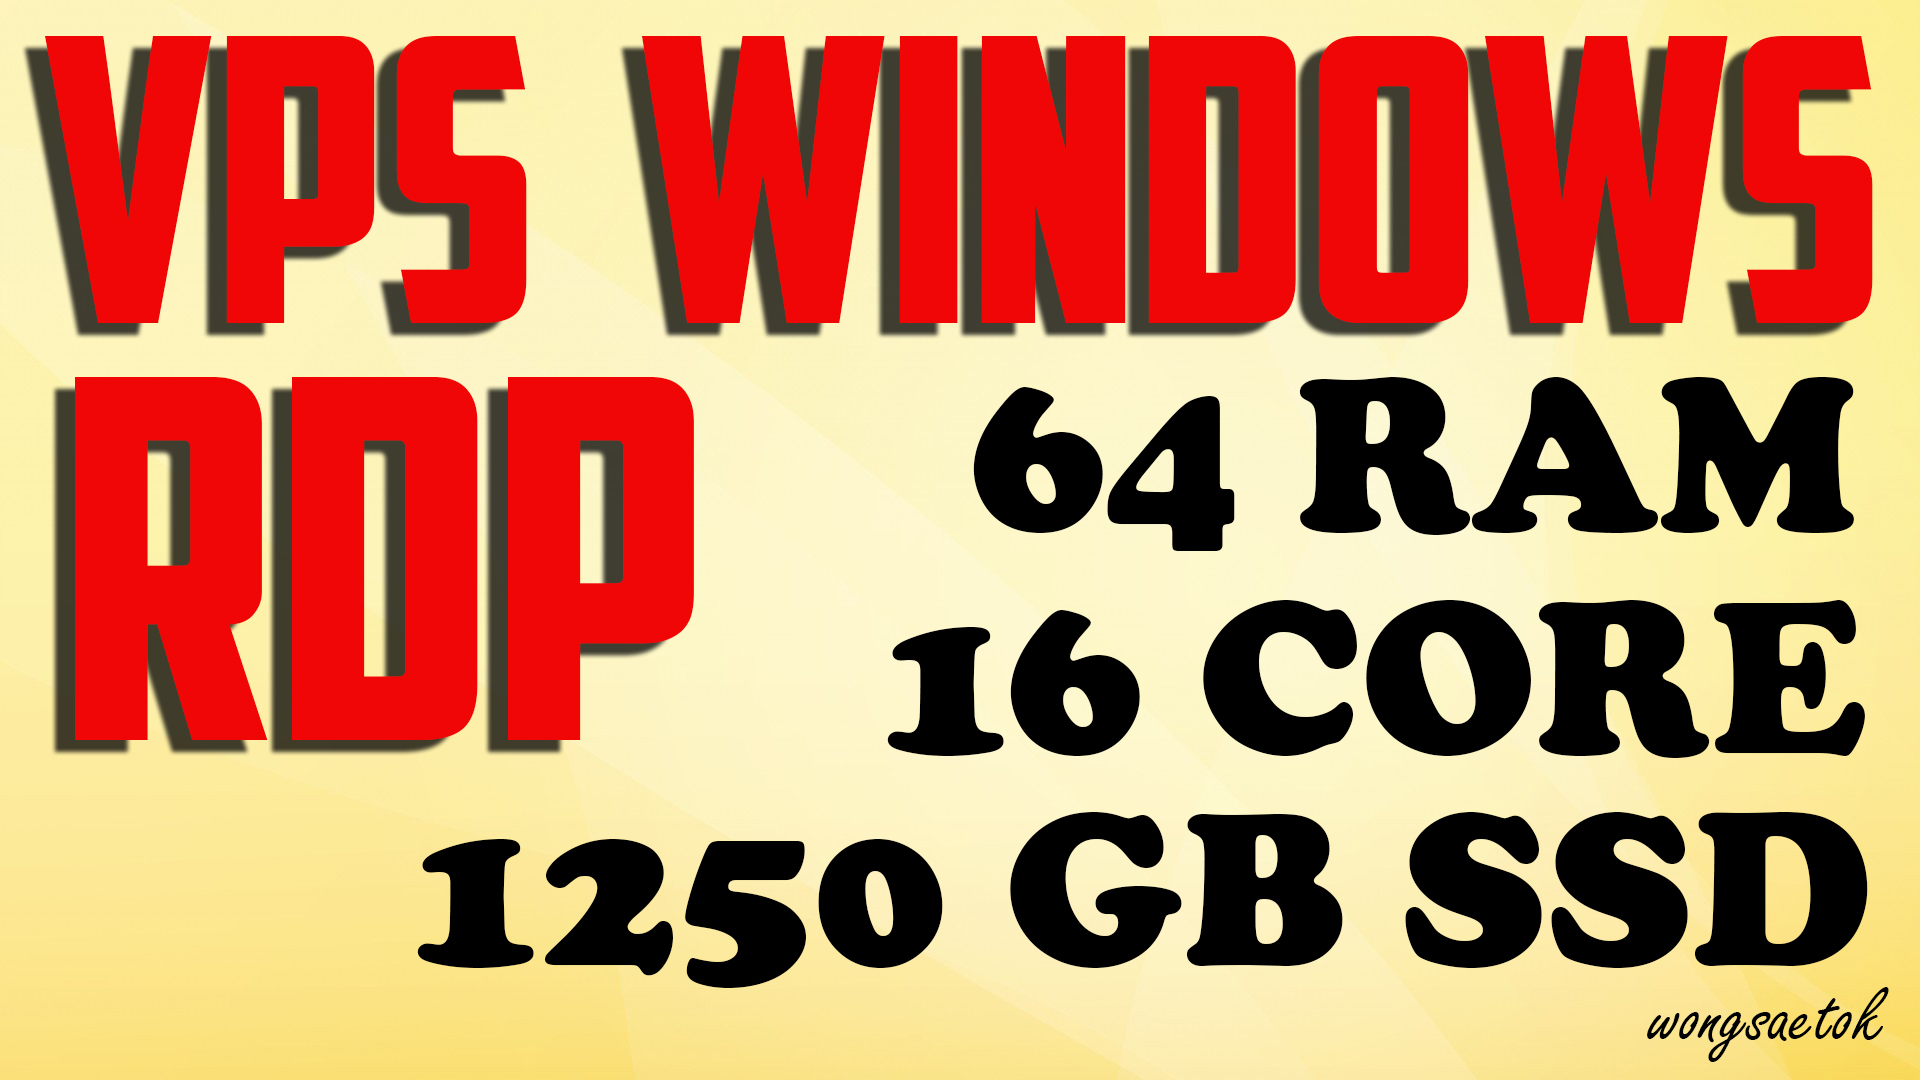 VPS RDP Windows 64 GB RAM 16 Core 1.25 TB SSD RENEWABLE